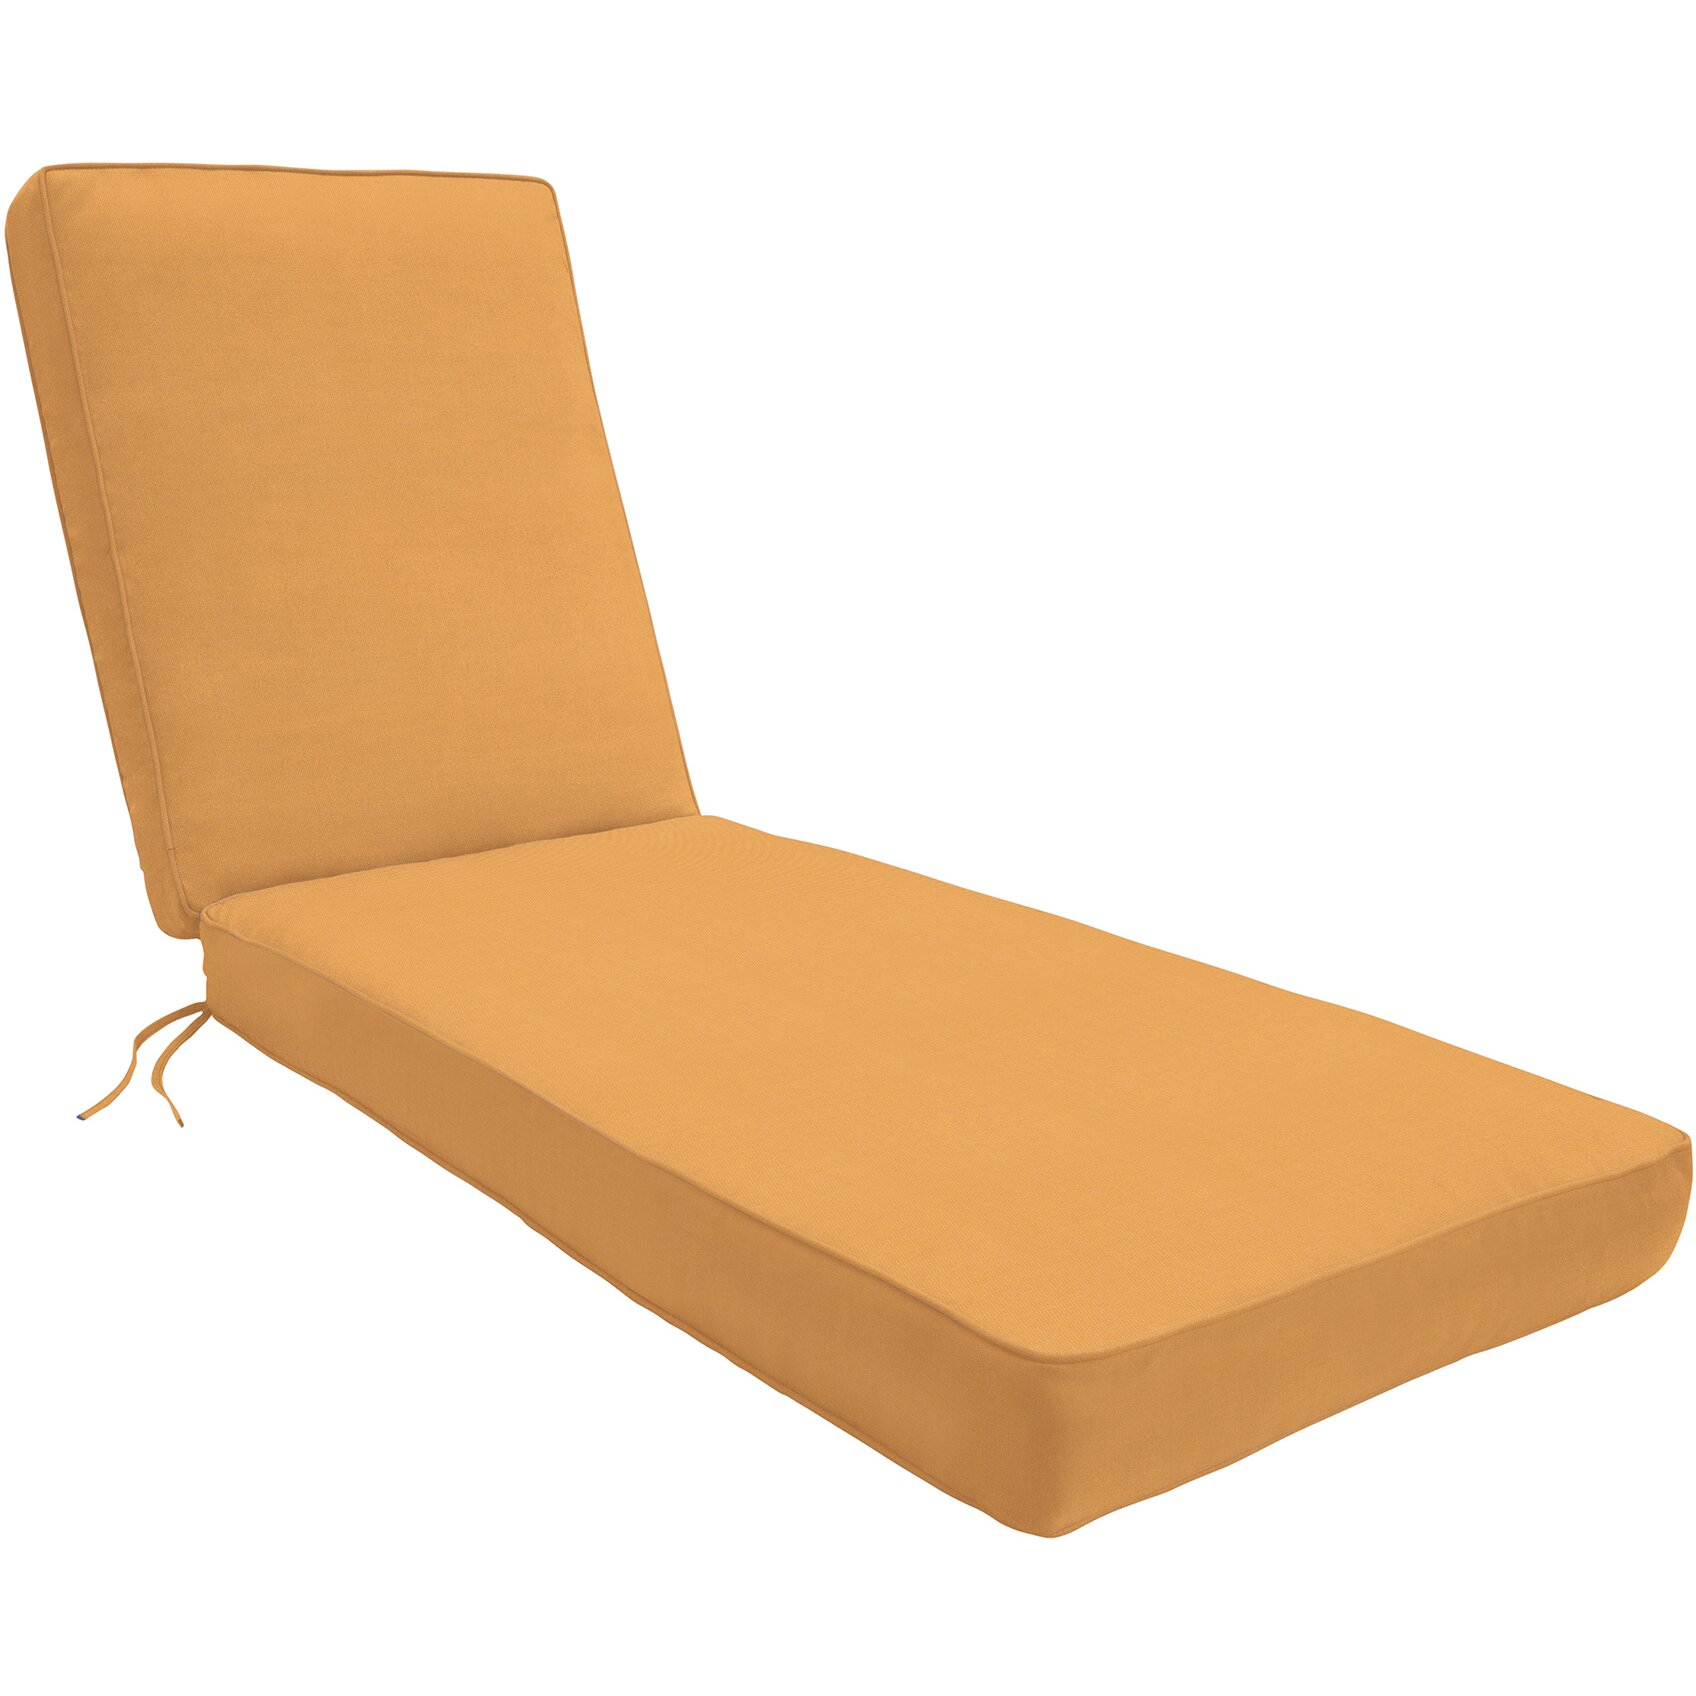 Wayfair Custom Outdoor Cushions Outdoor Sunbrella Chaise